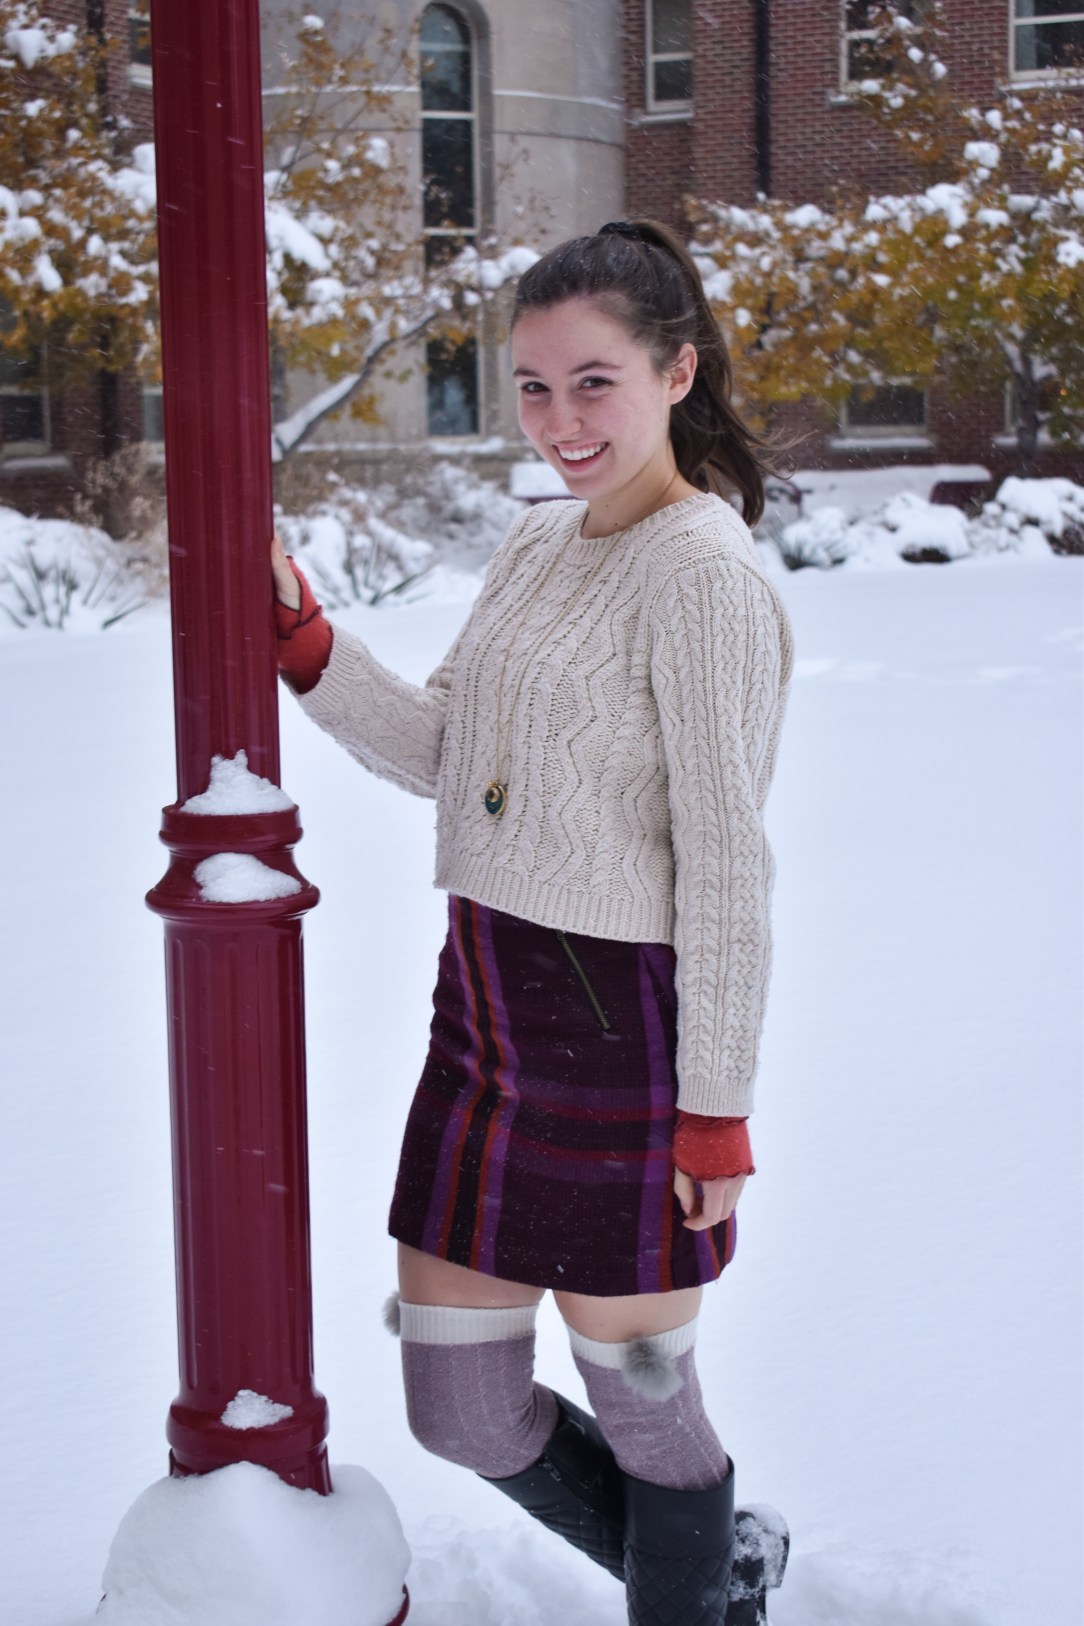 cableknit sweater, plaid skirt, winter outfit, fashion blogging